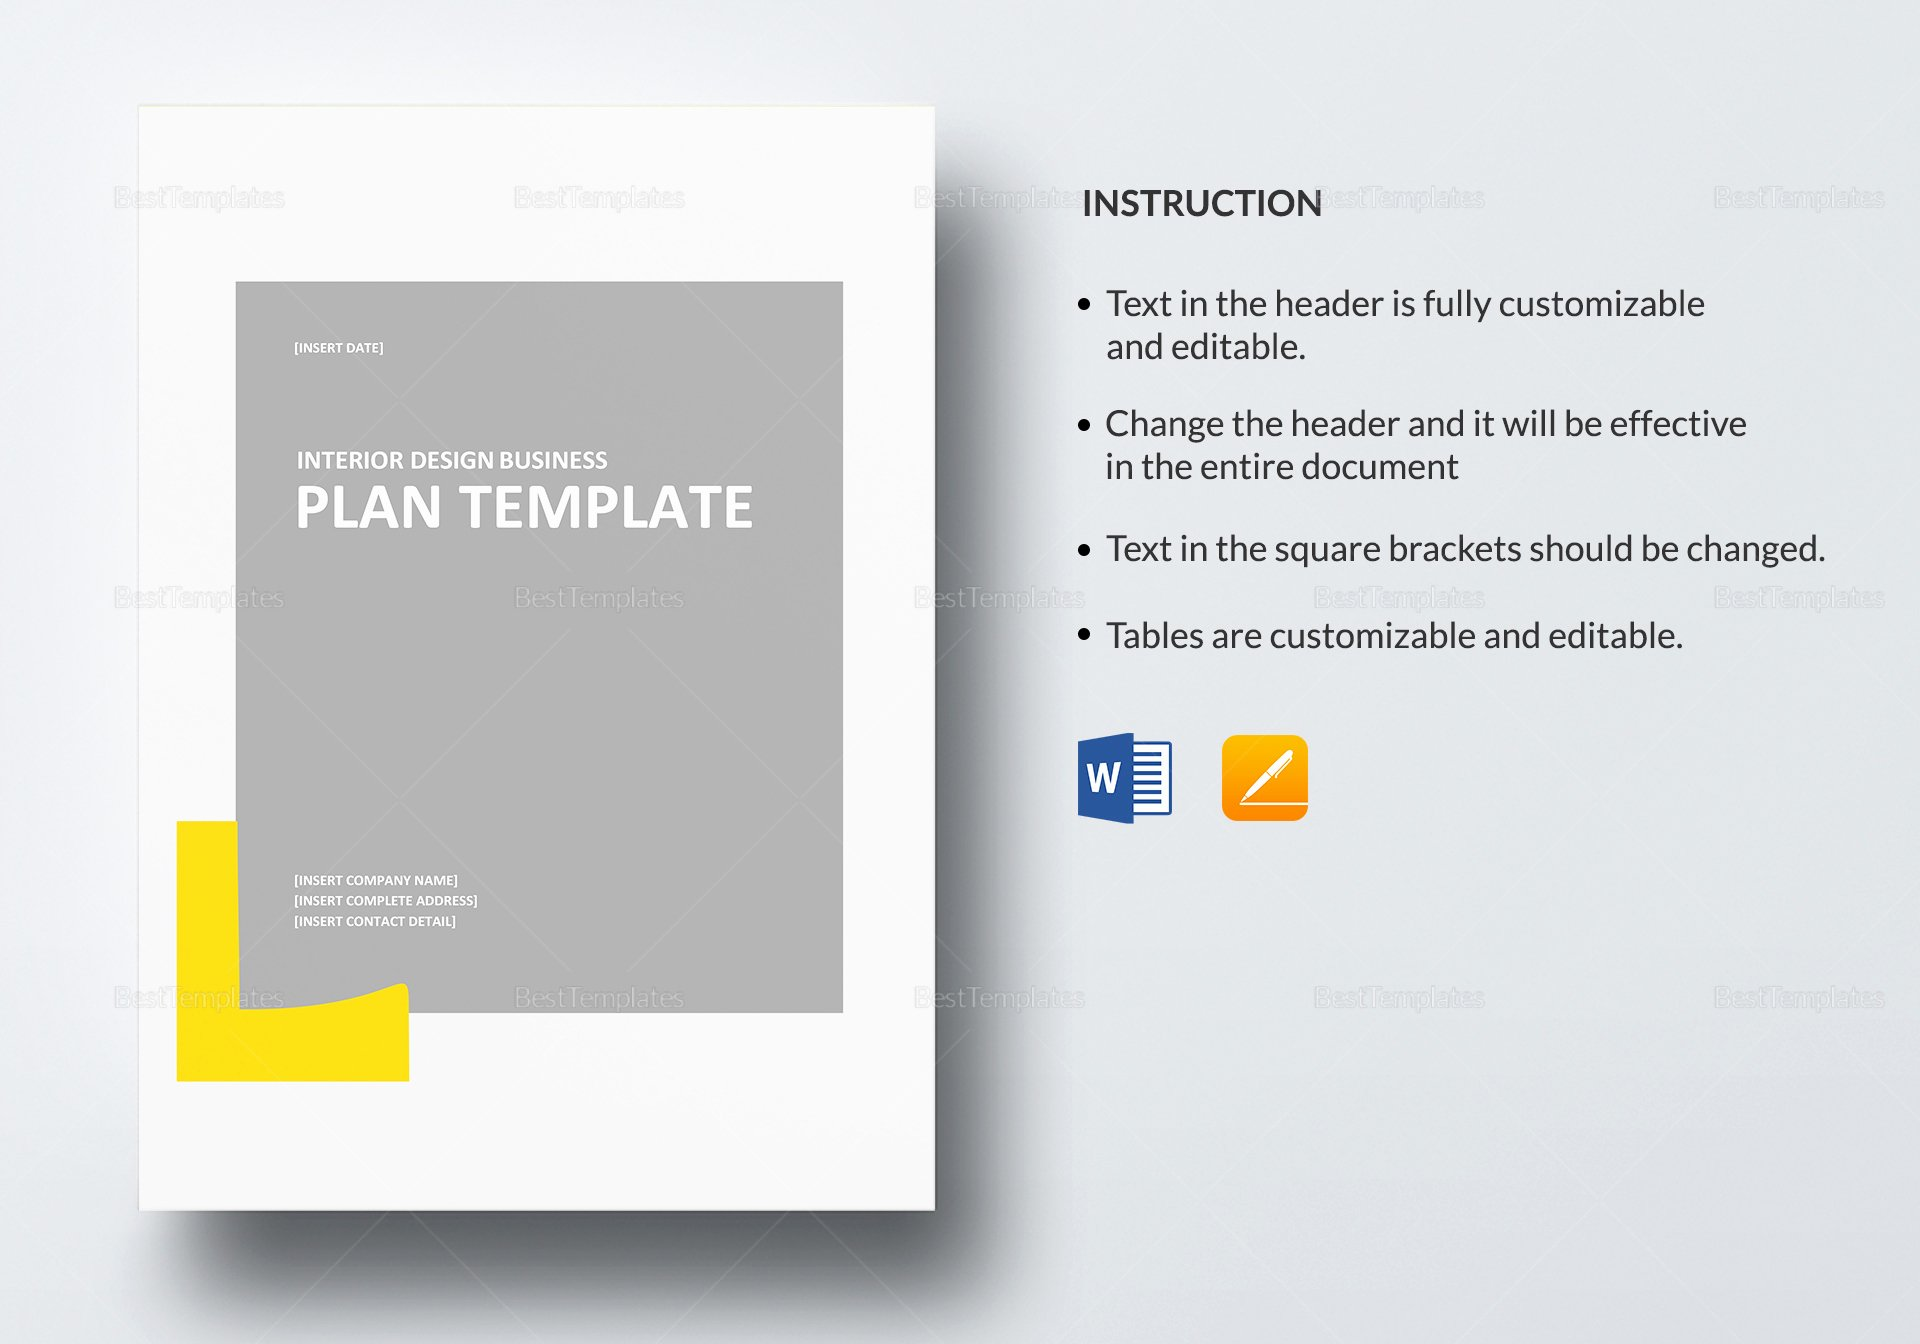 Google Business Plan Template Best Of Interior Design Business Plan Template In Word Google